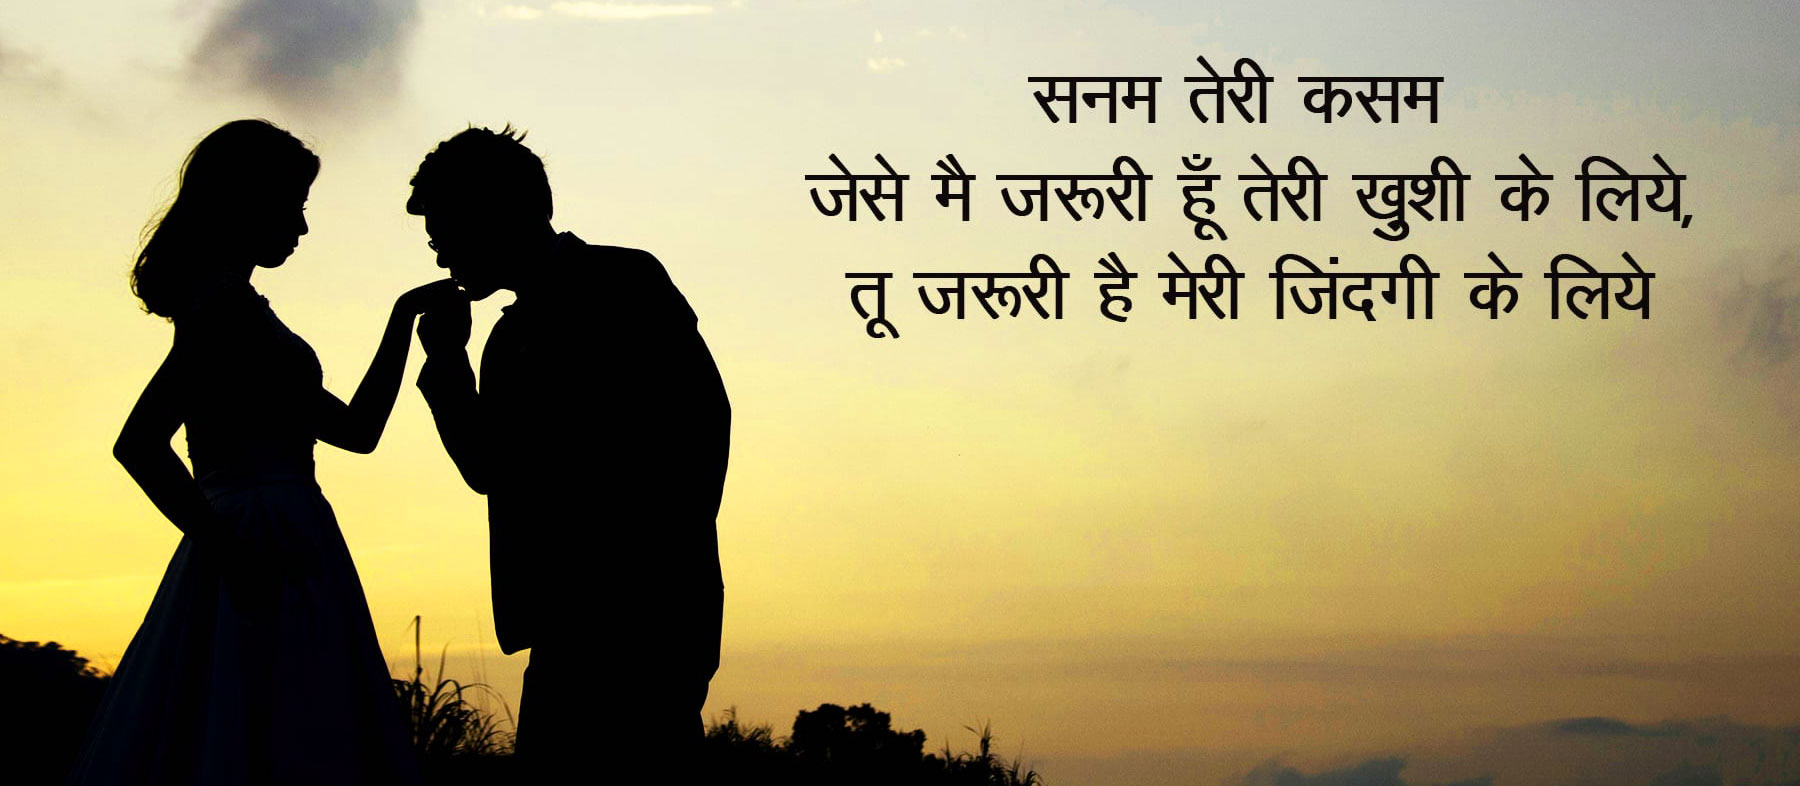 Romantic-Hindi-Shayari-Wallpaper-Pics-Download-15